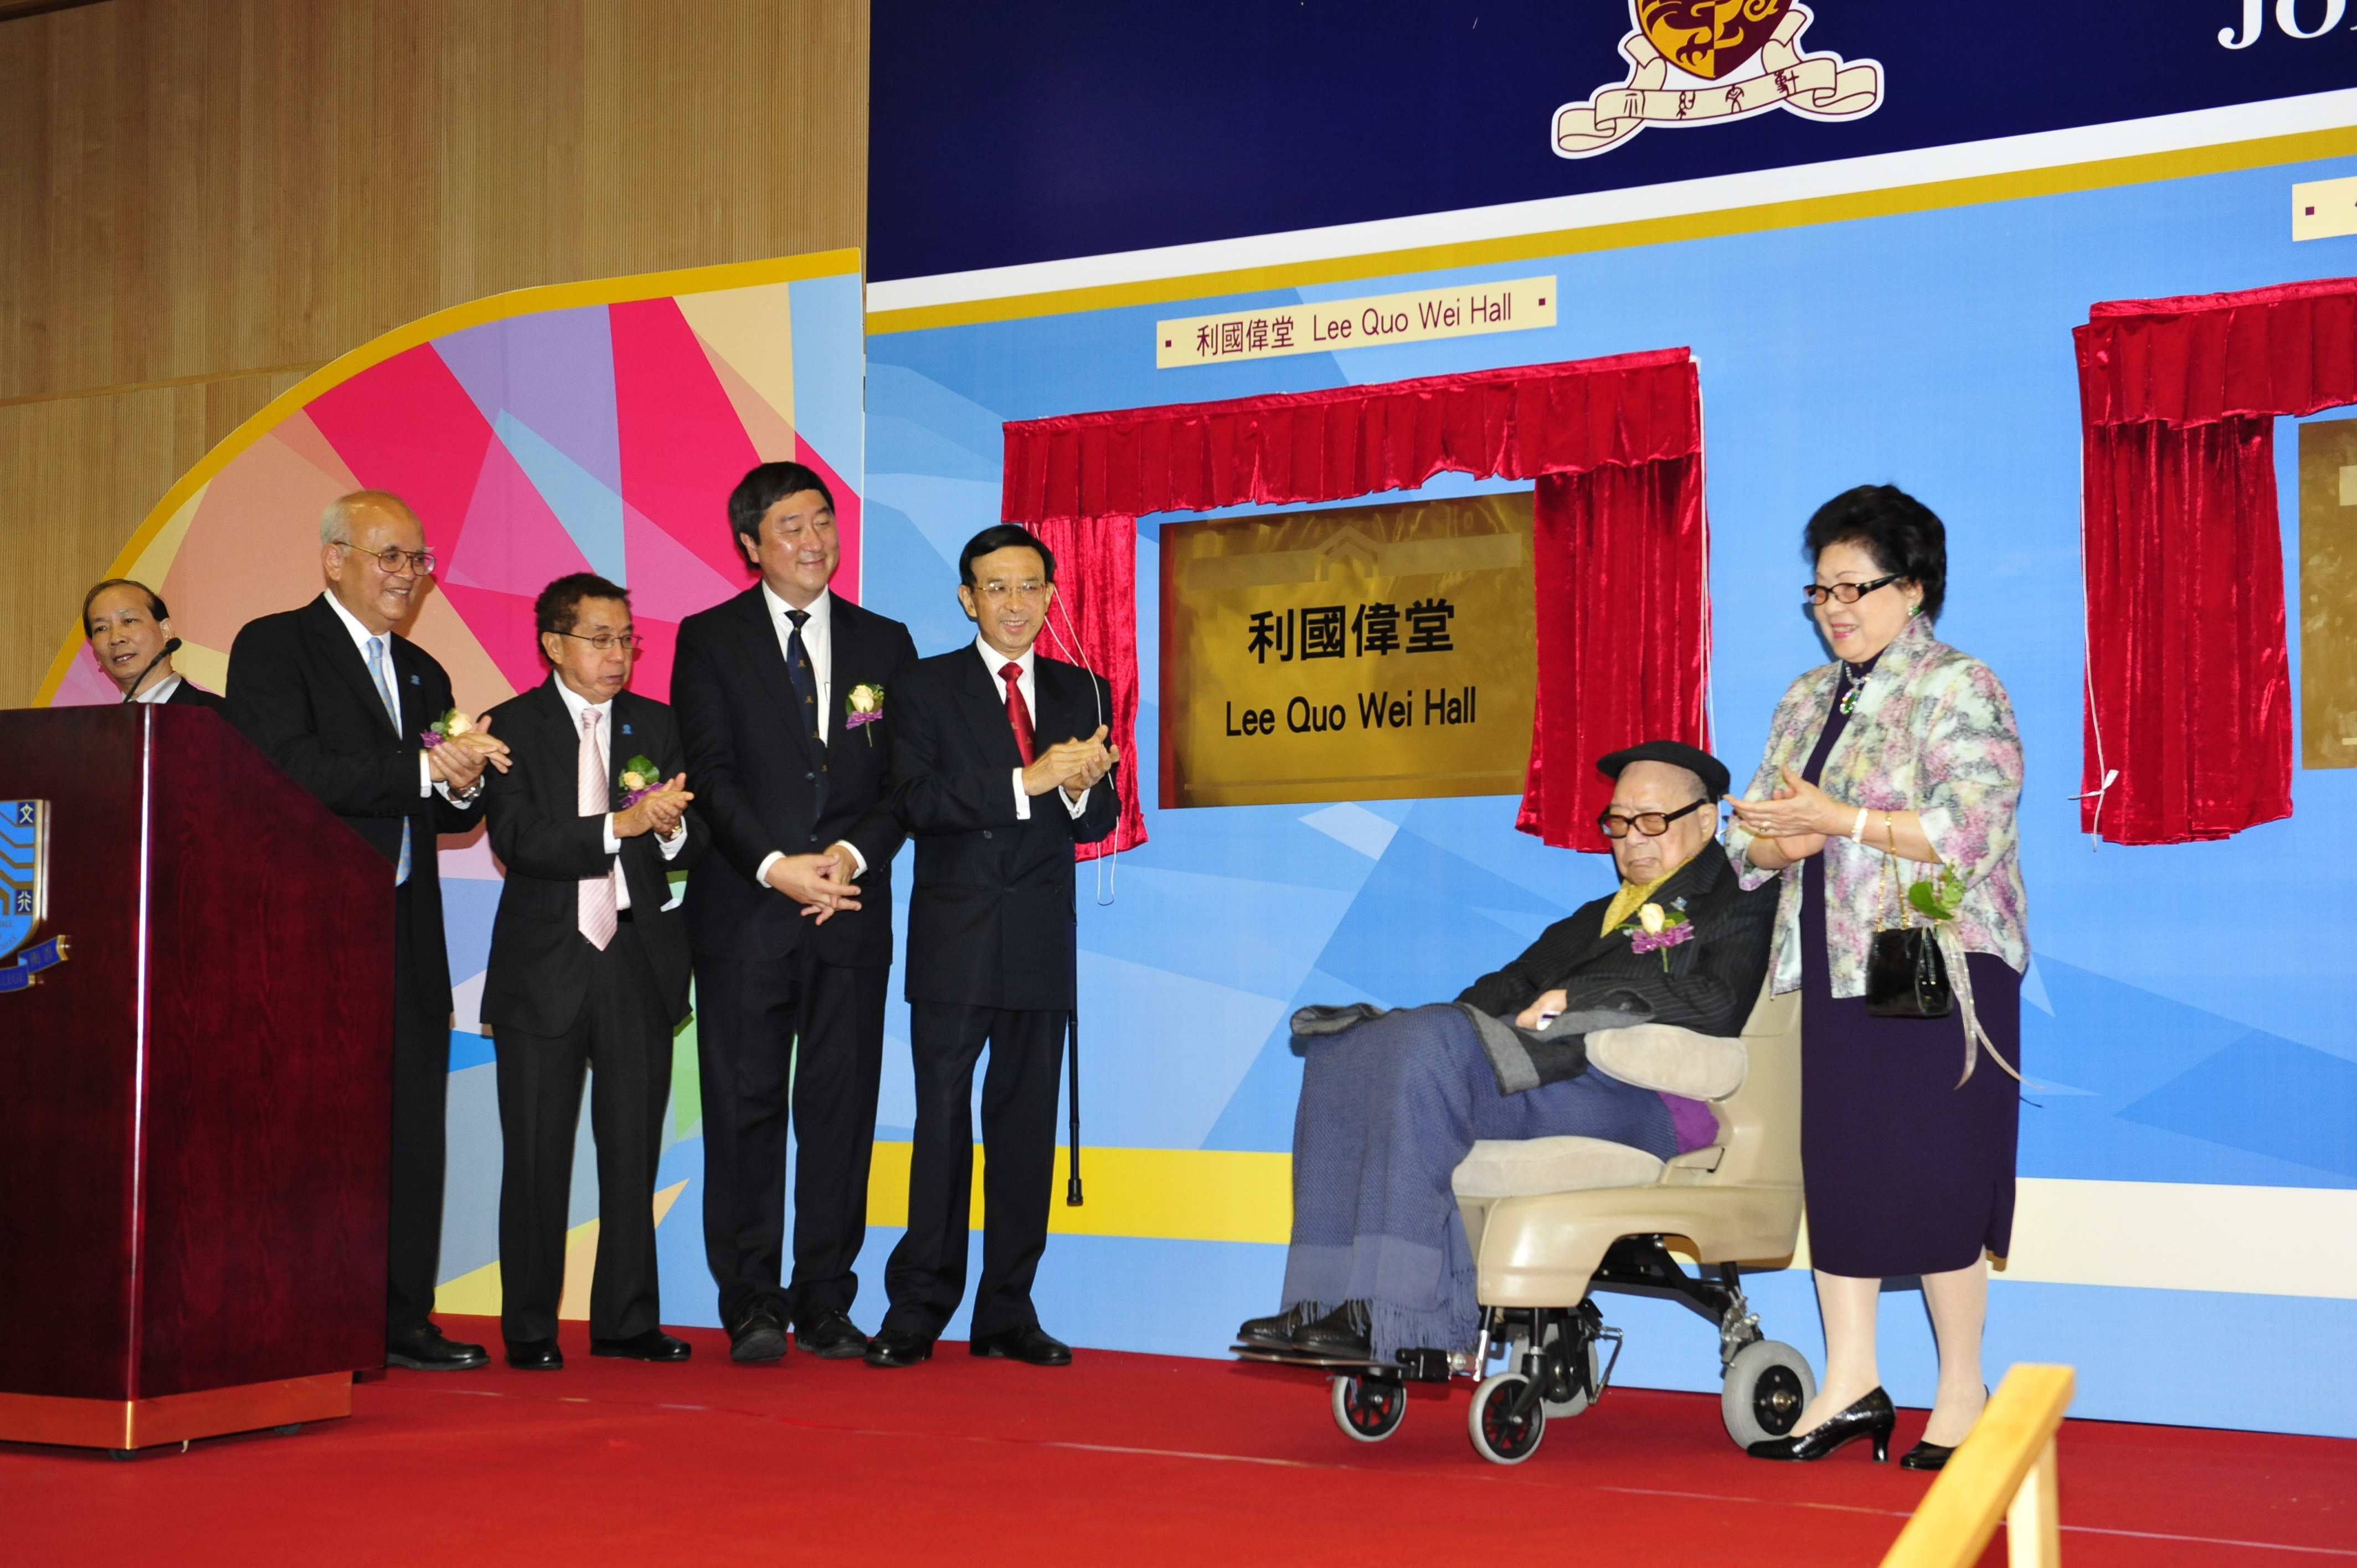 (From left) Prof. Samuel Sun, Dr. Tzu-leung Ho, Prof. Joseph Sung, Dr. Vincent Cheng and Dr. and Mrs. Lee Quo Wei unveil the plaque of Lee Quo Wei Hall.